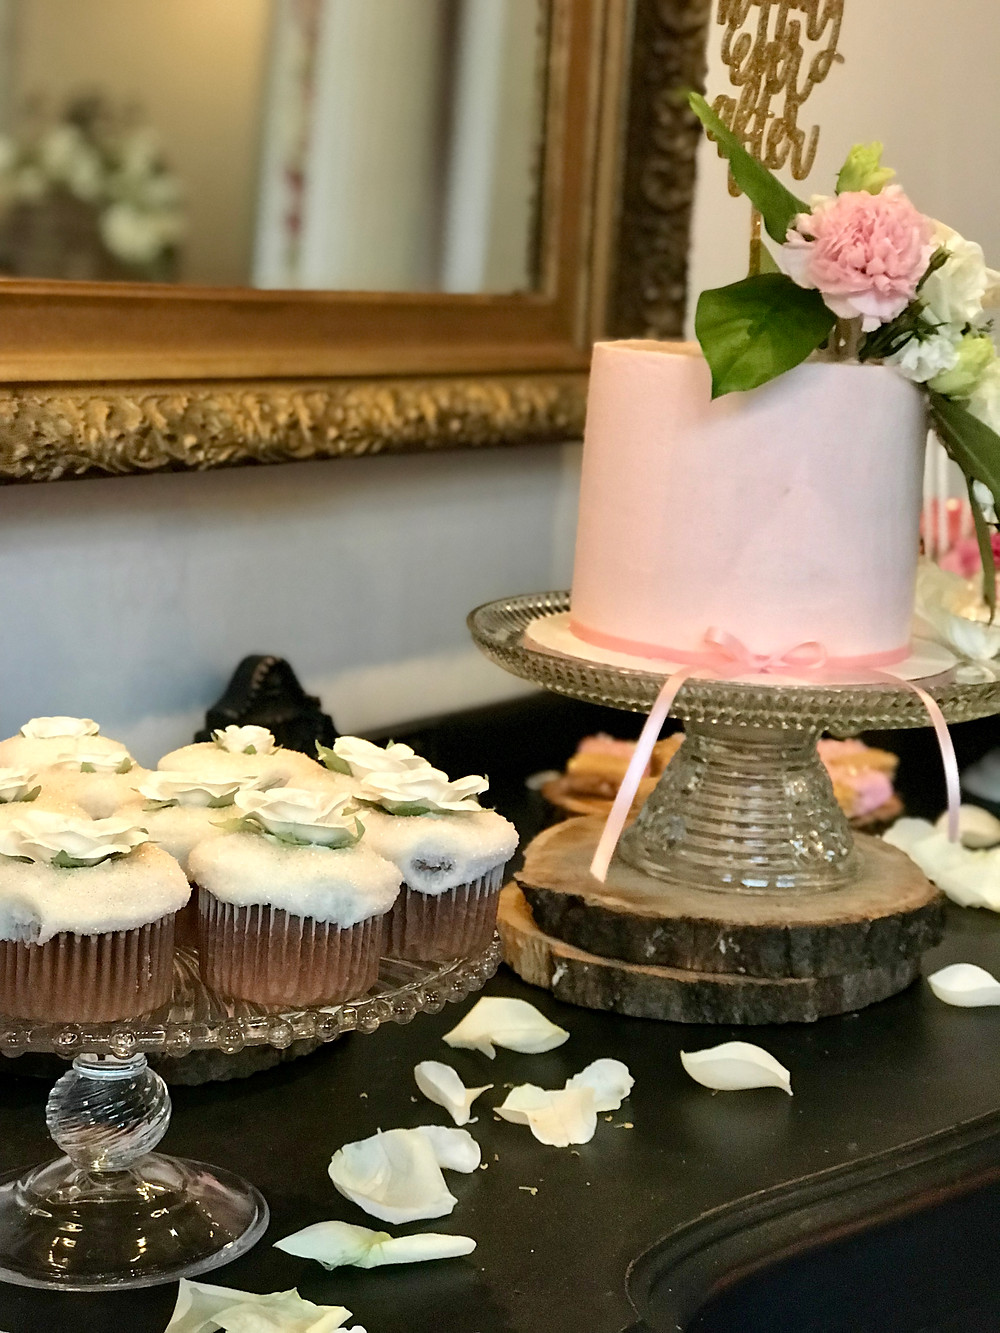 Scattered rose petals along with a display of cupcakes, cake pops and layered cake made the vintage buffet so elegant.